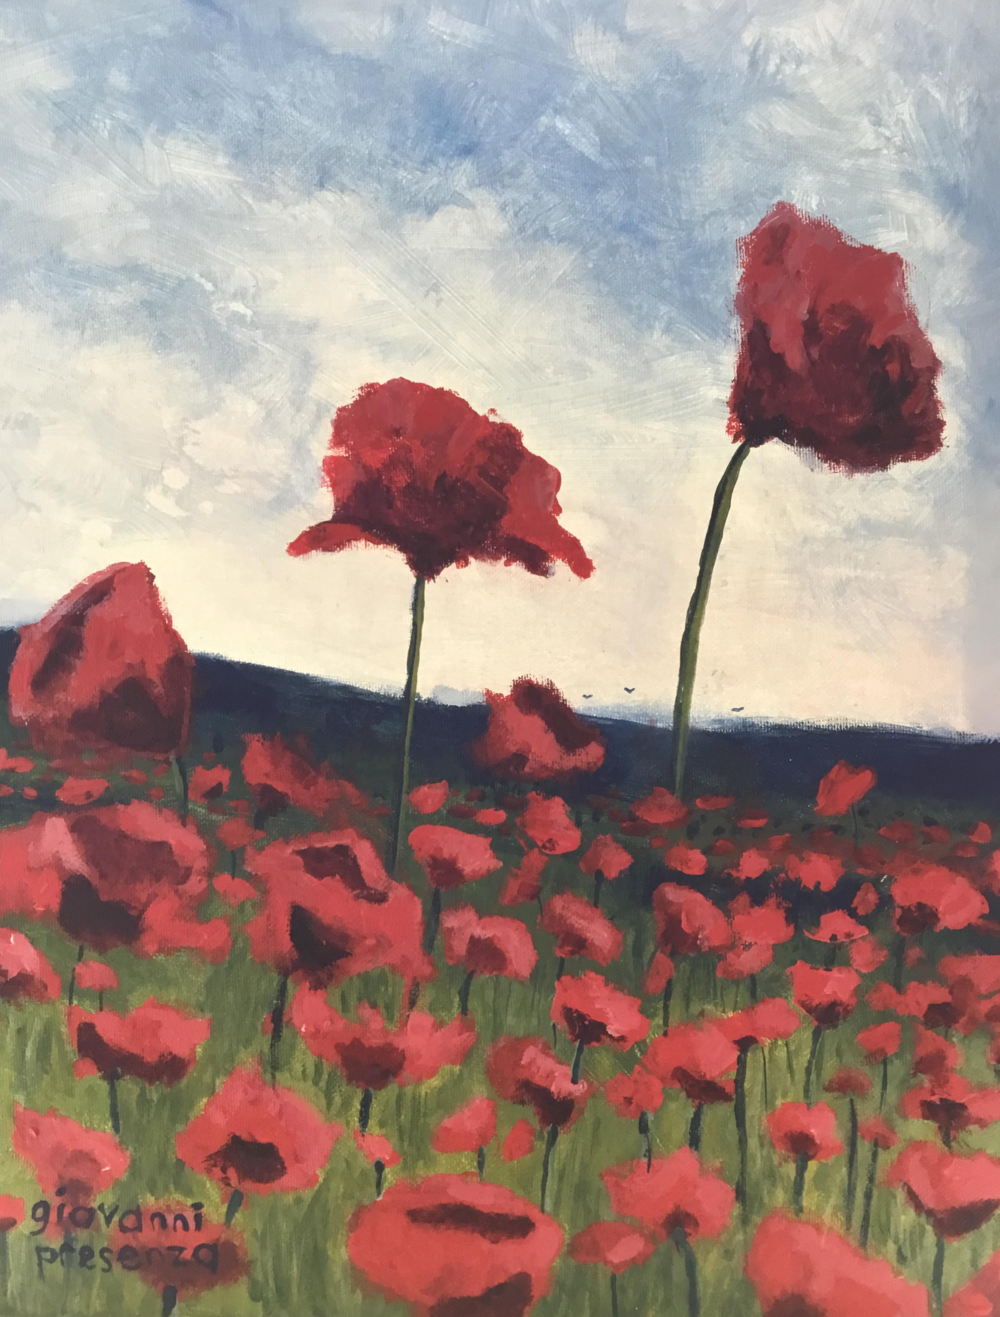 "Poppies, Acrylic on Canvas, 16x20"", unframed"